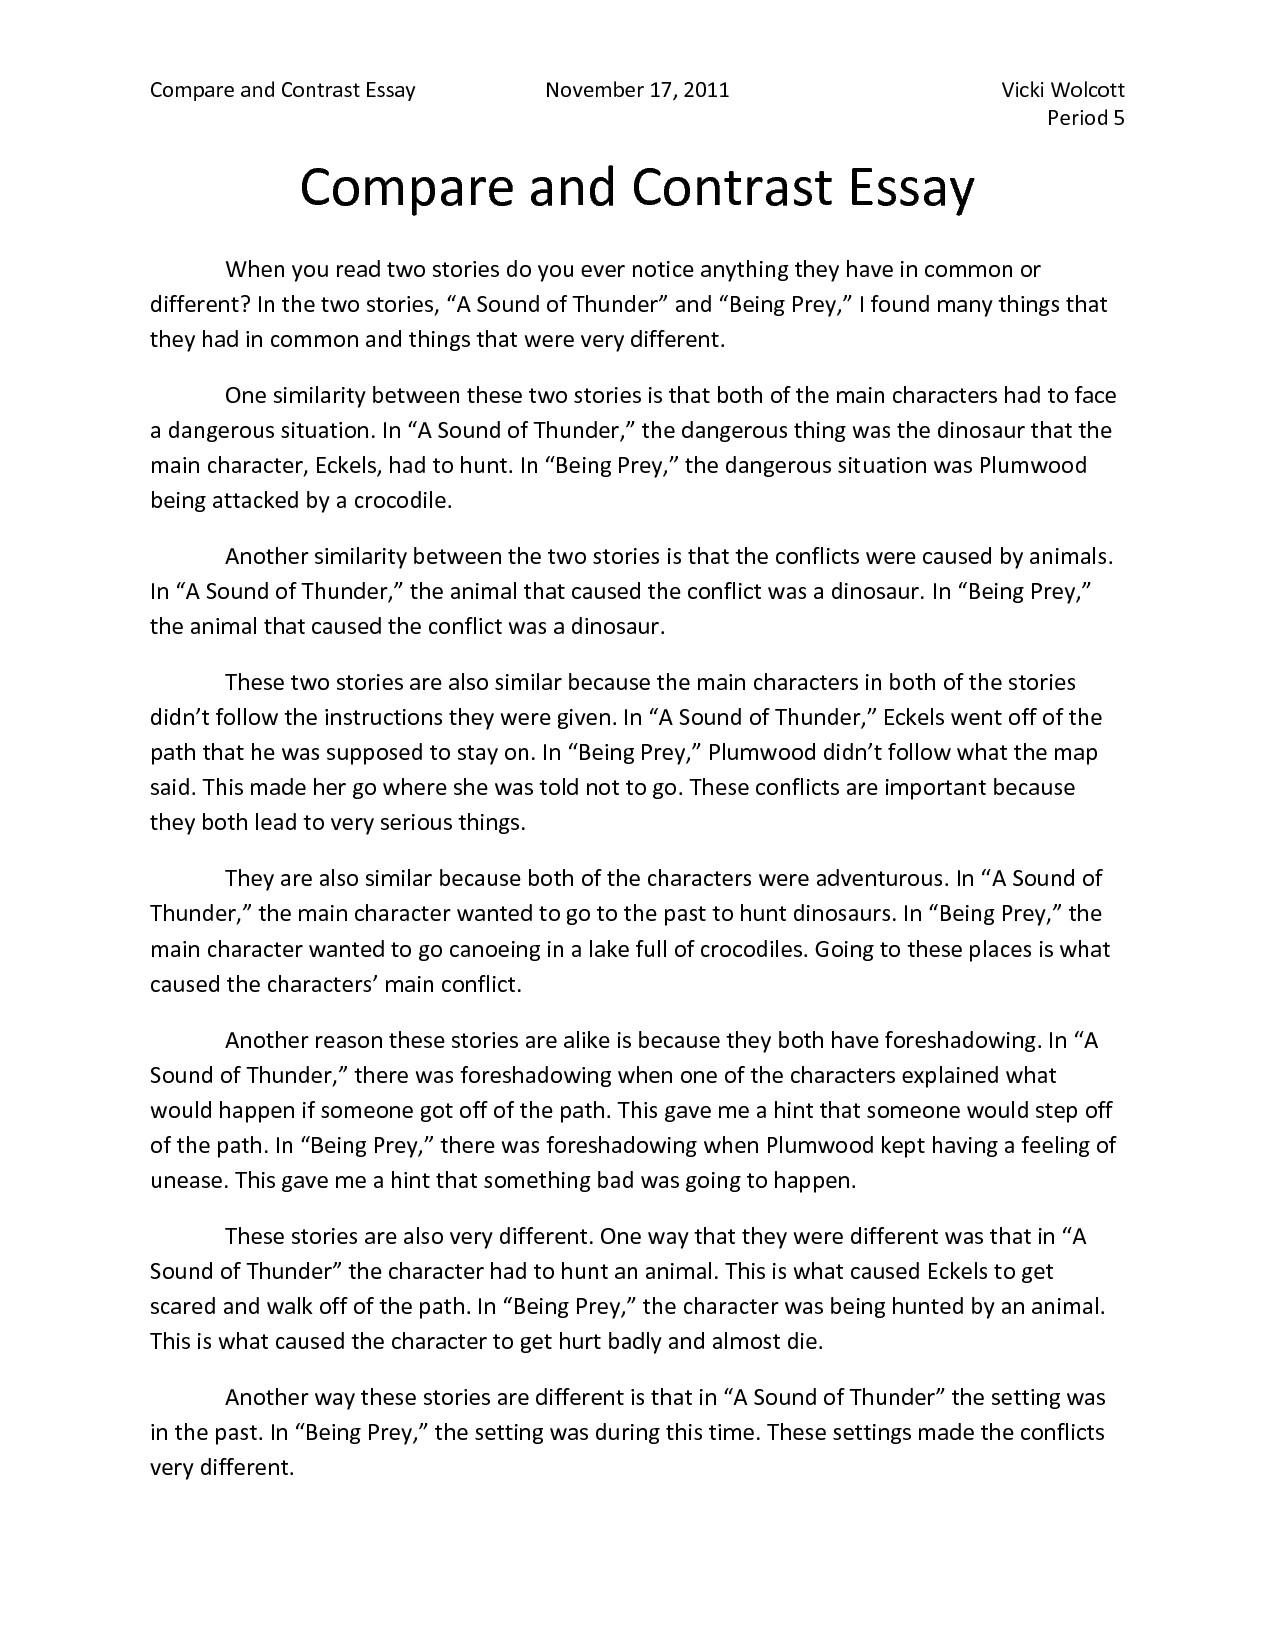 006 Comparing And Contrasting Essay Example Satire Examples Of Comparison Contrast Essays Com How To Write Outstanding A Compare Outline Ppt Middle School Full